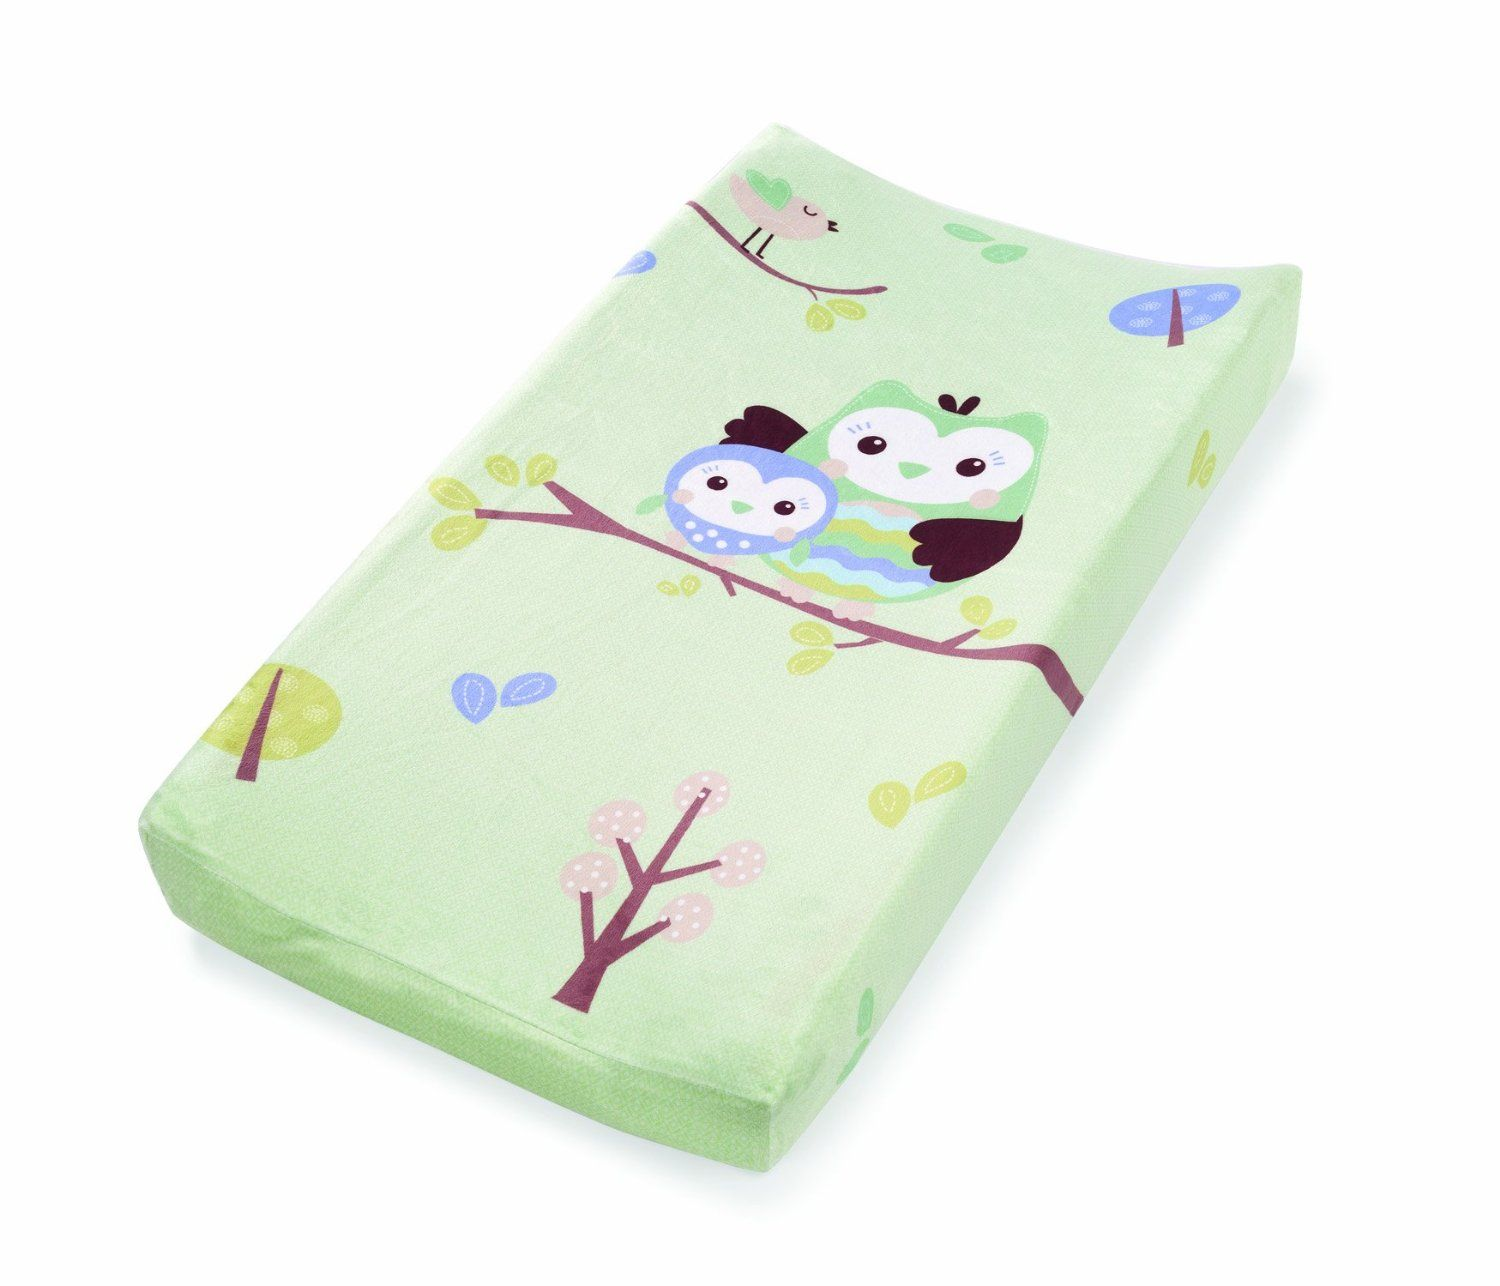 Summer Infant Changing Pad Cover (Who Loves You Owl Design} Only $9.52 (reg. $20.99) + FREE Shipping!!